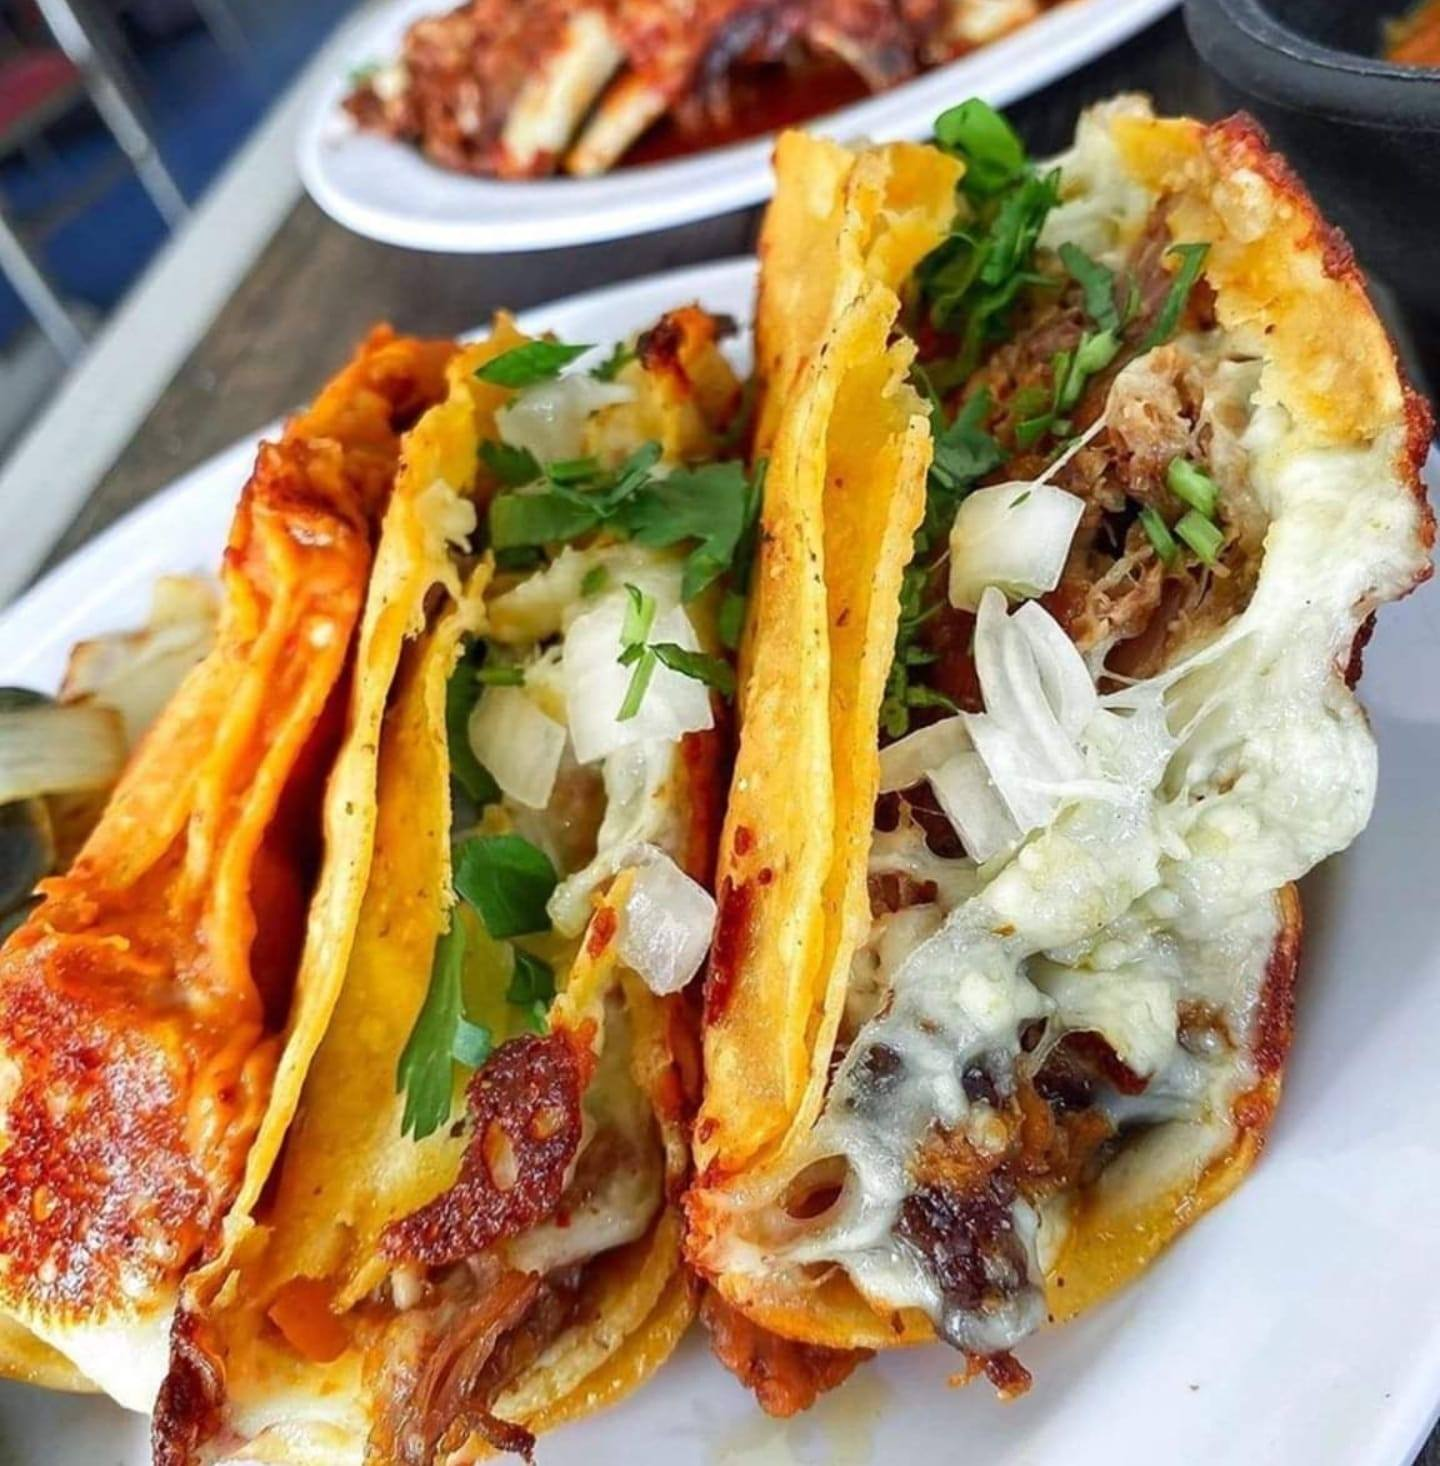 Birria tacos on a white plate.